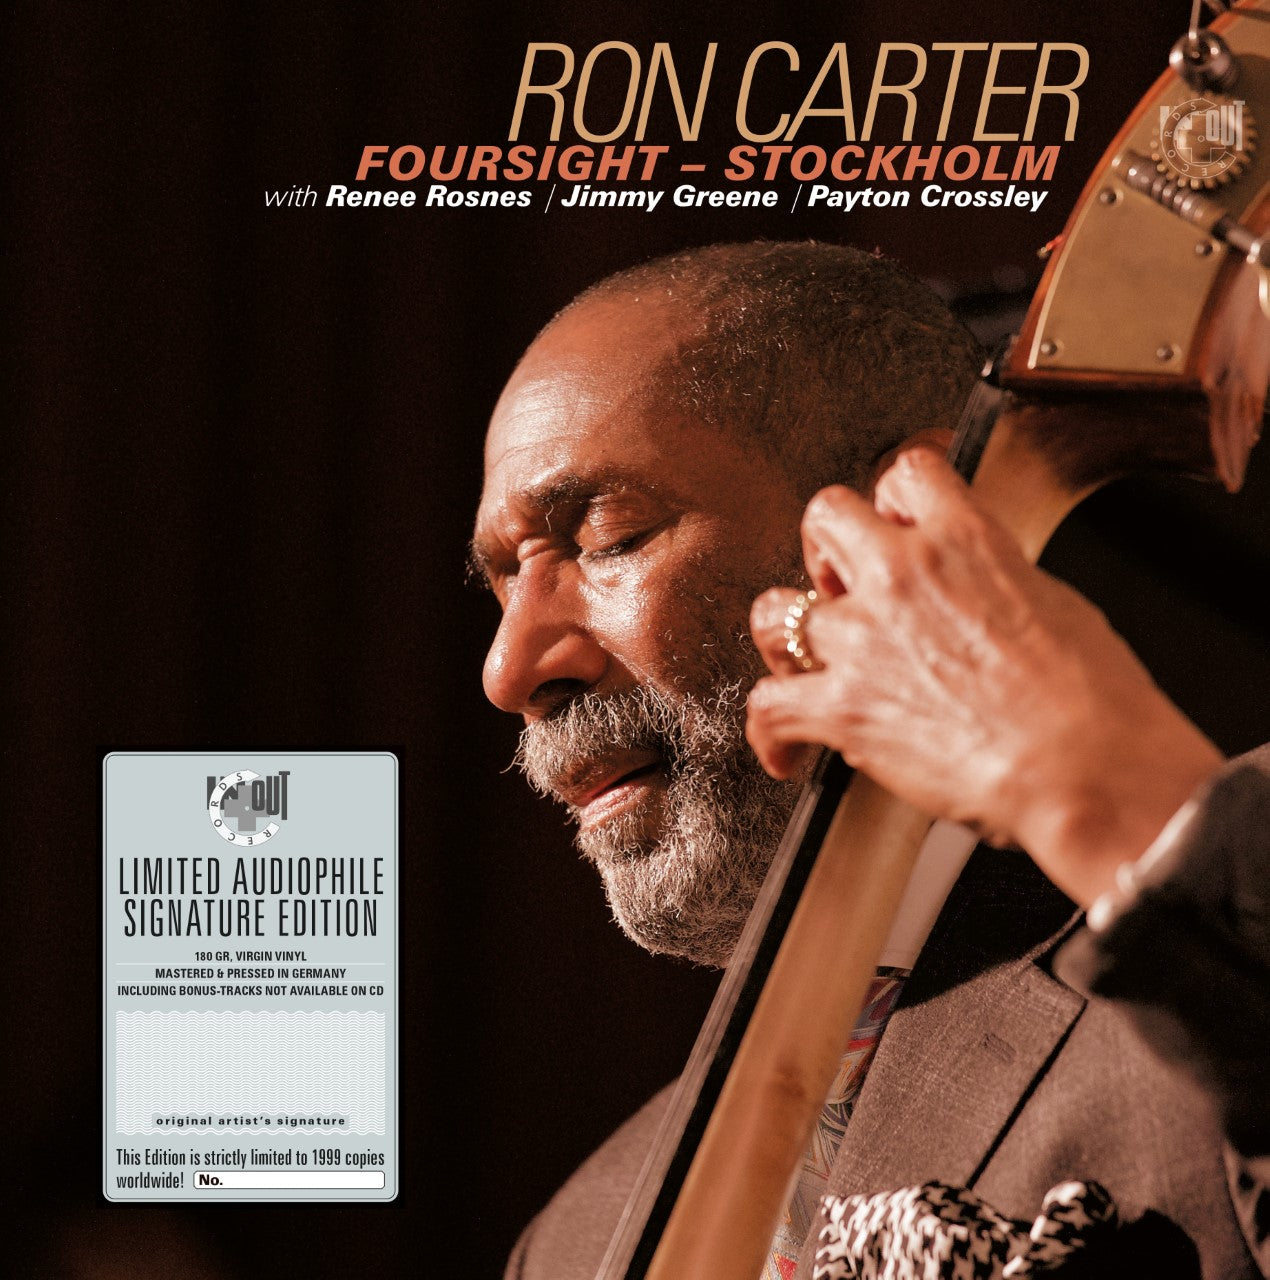 Ron Carter - Stockholm (RSD 2020 Drop One) 180g Virgin Signed Vinyl Record Album